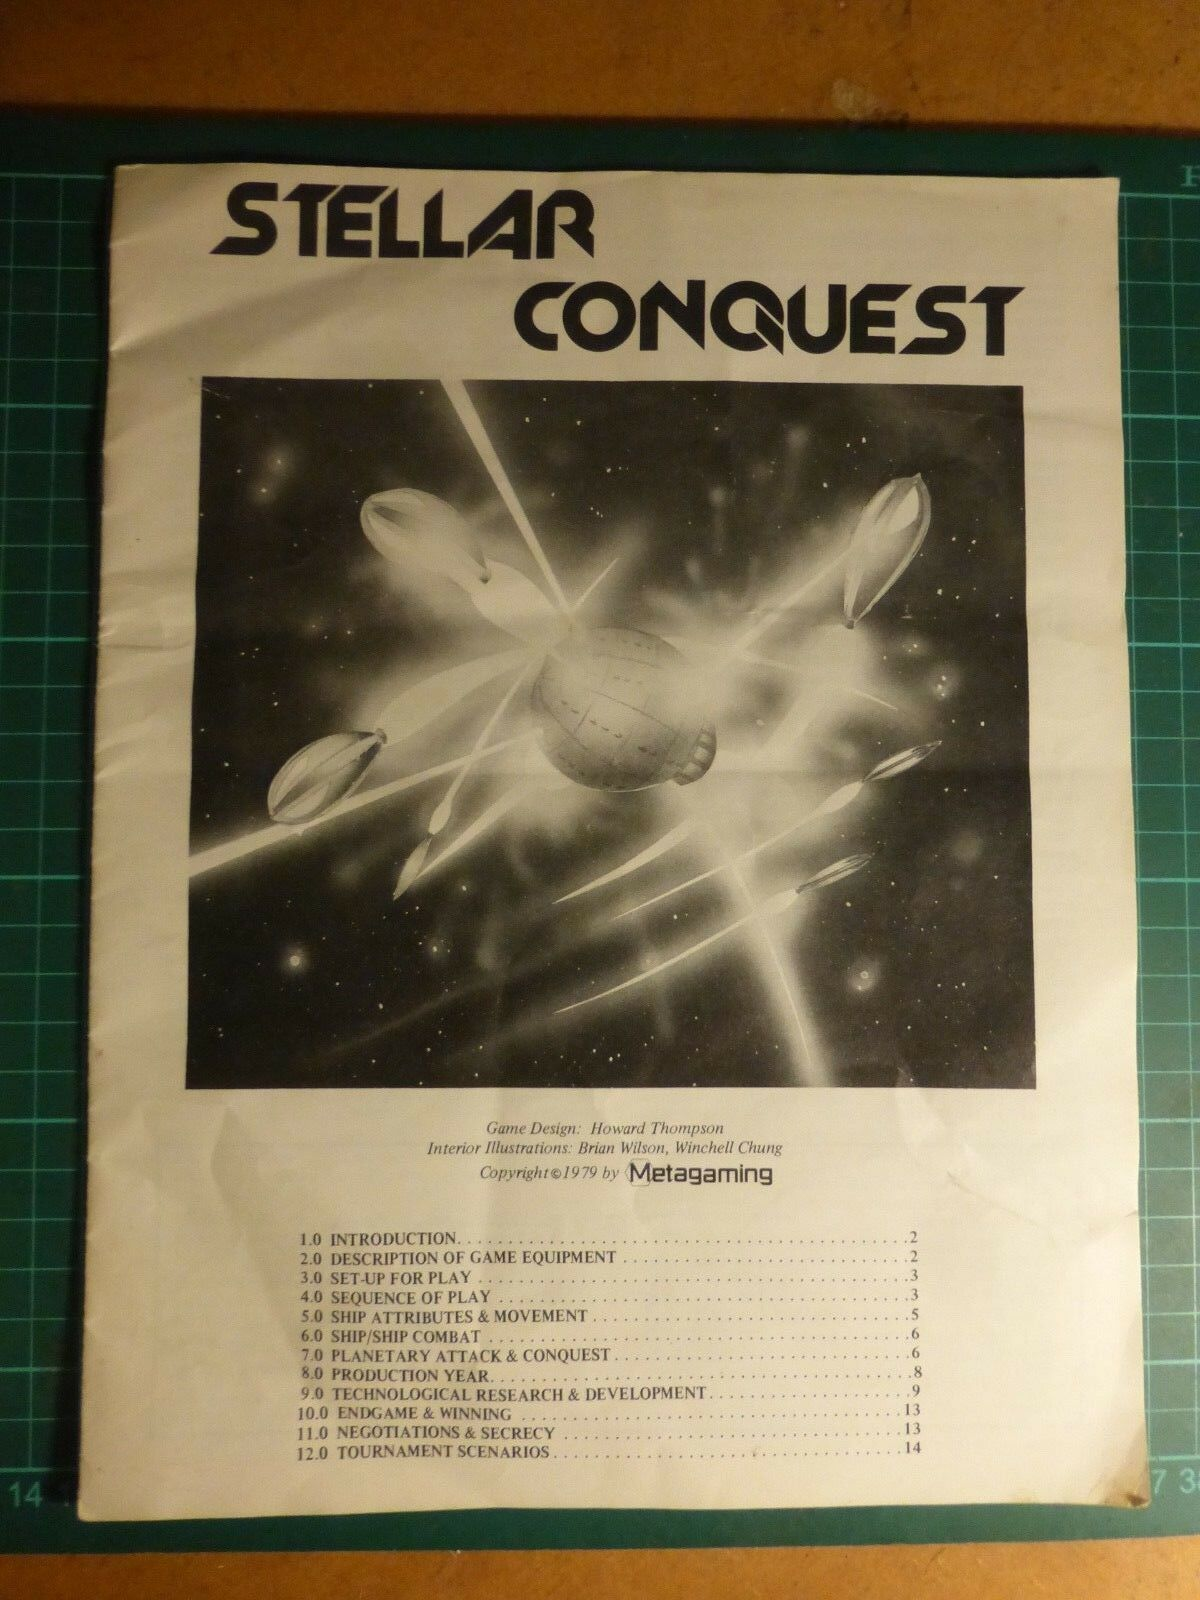 Stellar Conquest complet complet complet par Metagaming avalon Hill Sci-Fi Board wargame d9c263